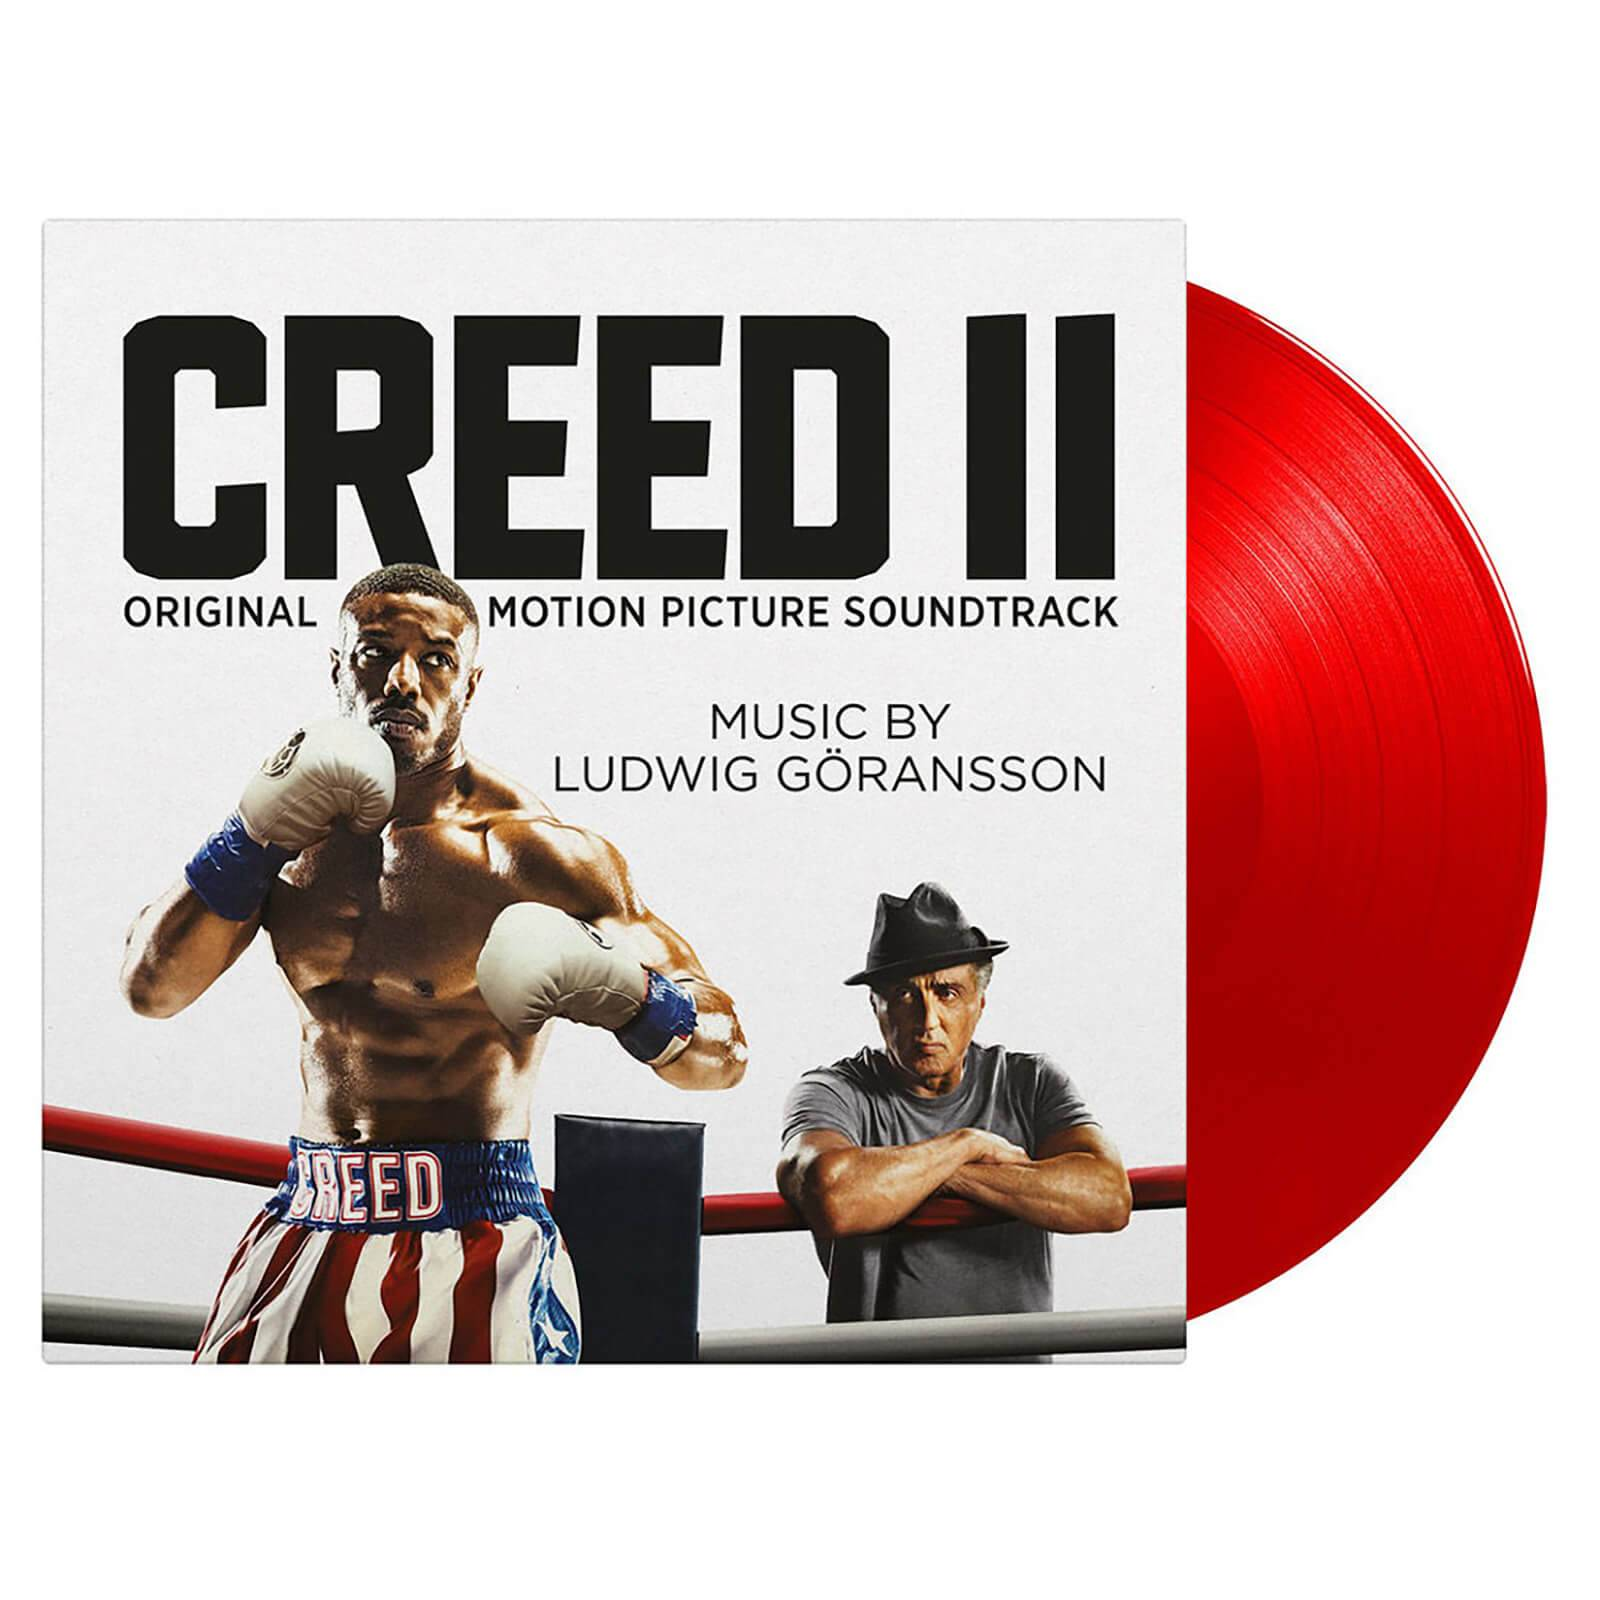 Music On Vinyl: At The Movies Ludwig Goransson - Creed II [LP] (LIMITED RED 180 Gram Audiophile Vinyl, PVC sleeve, mini-poster, sticker sleeve, numbered to 500)